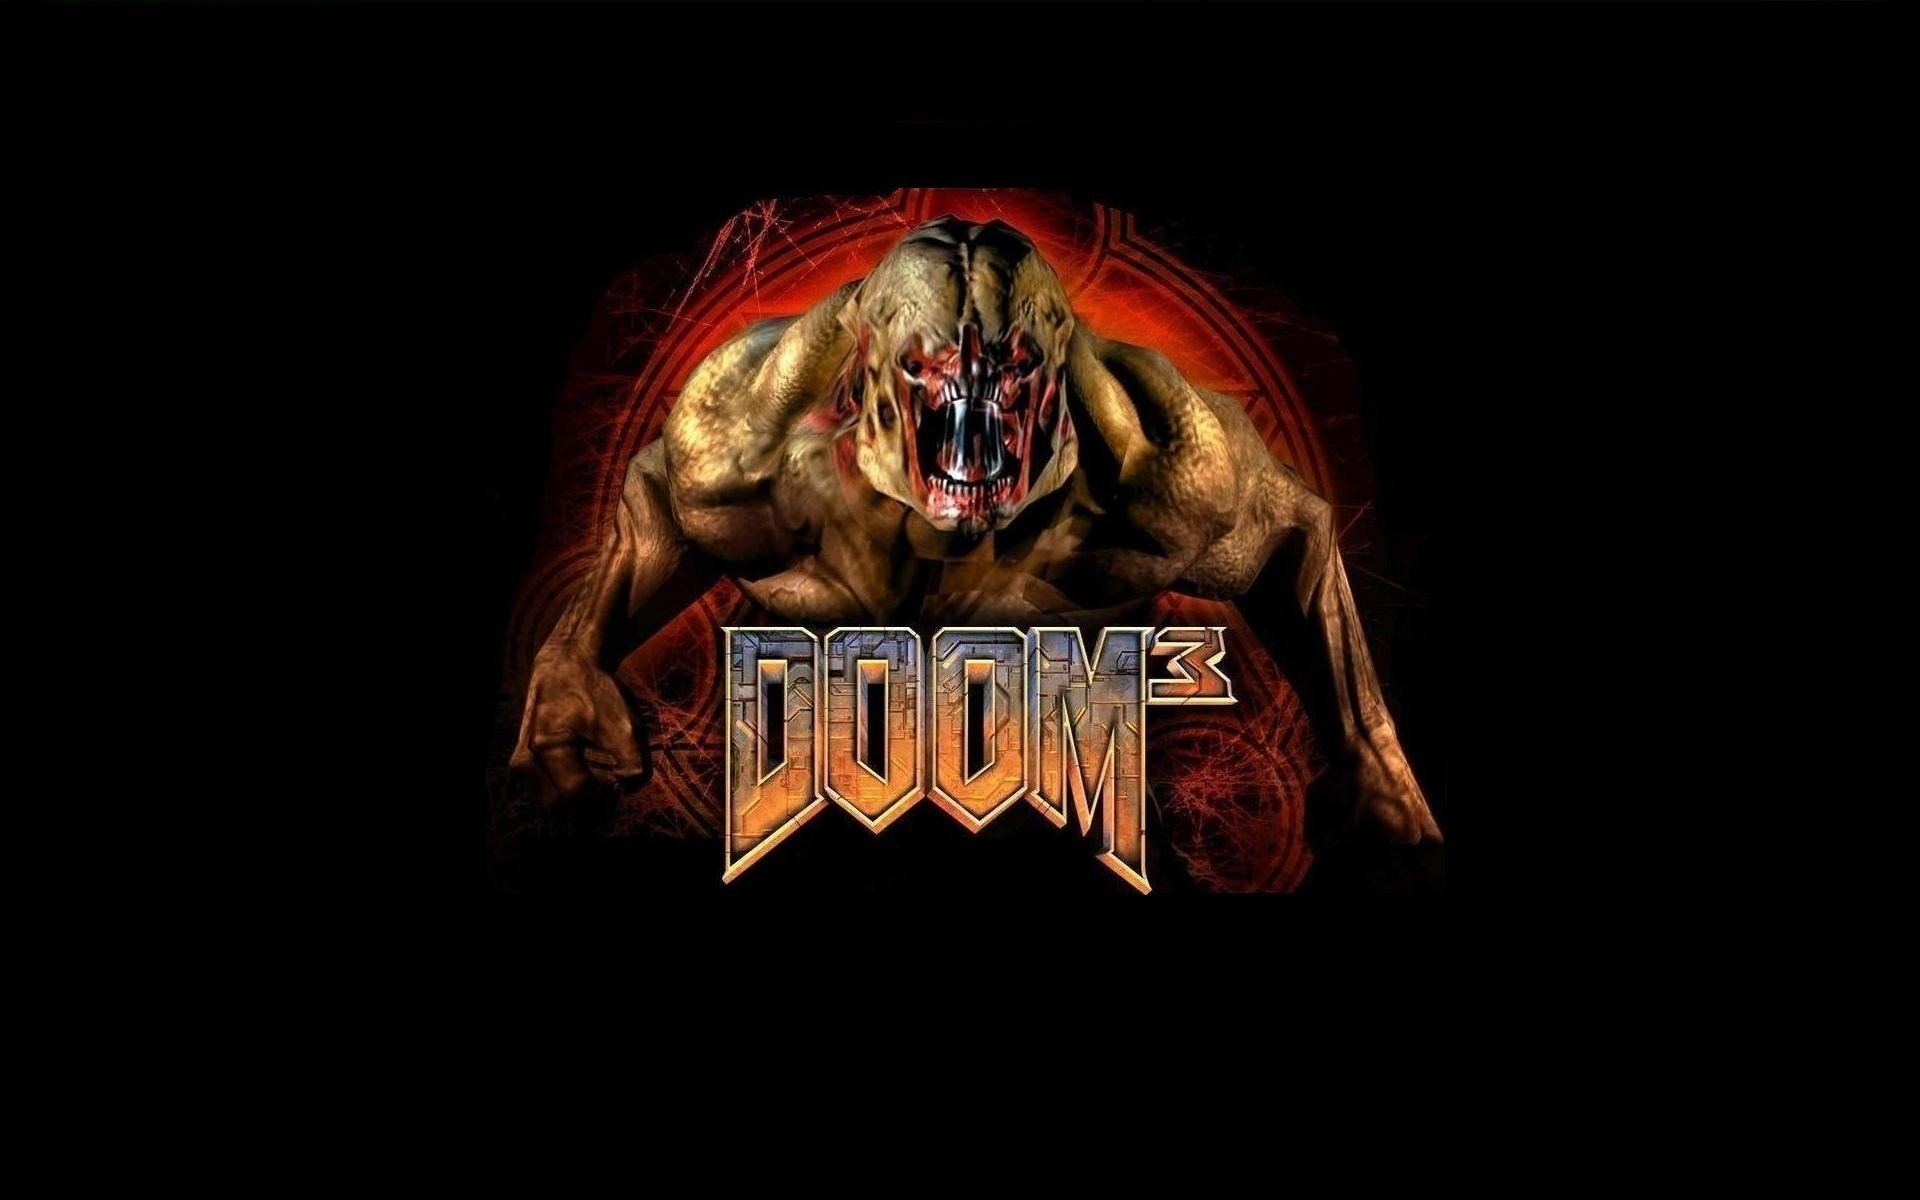 doom wallpaper 1366x768 - photo #19